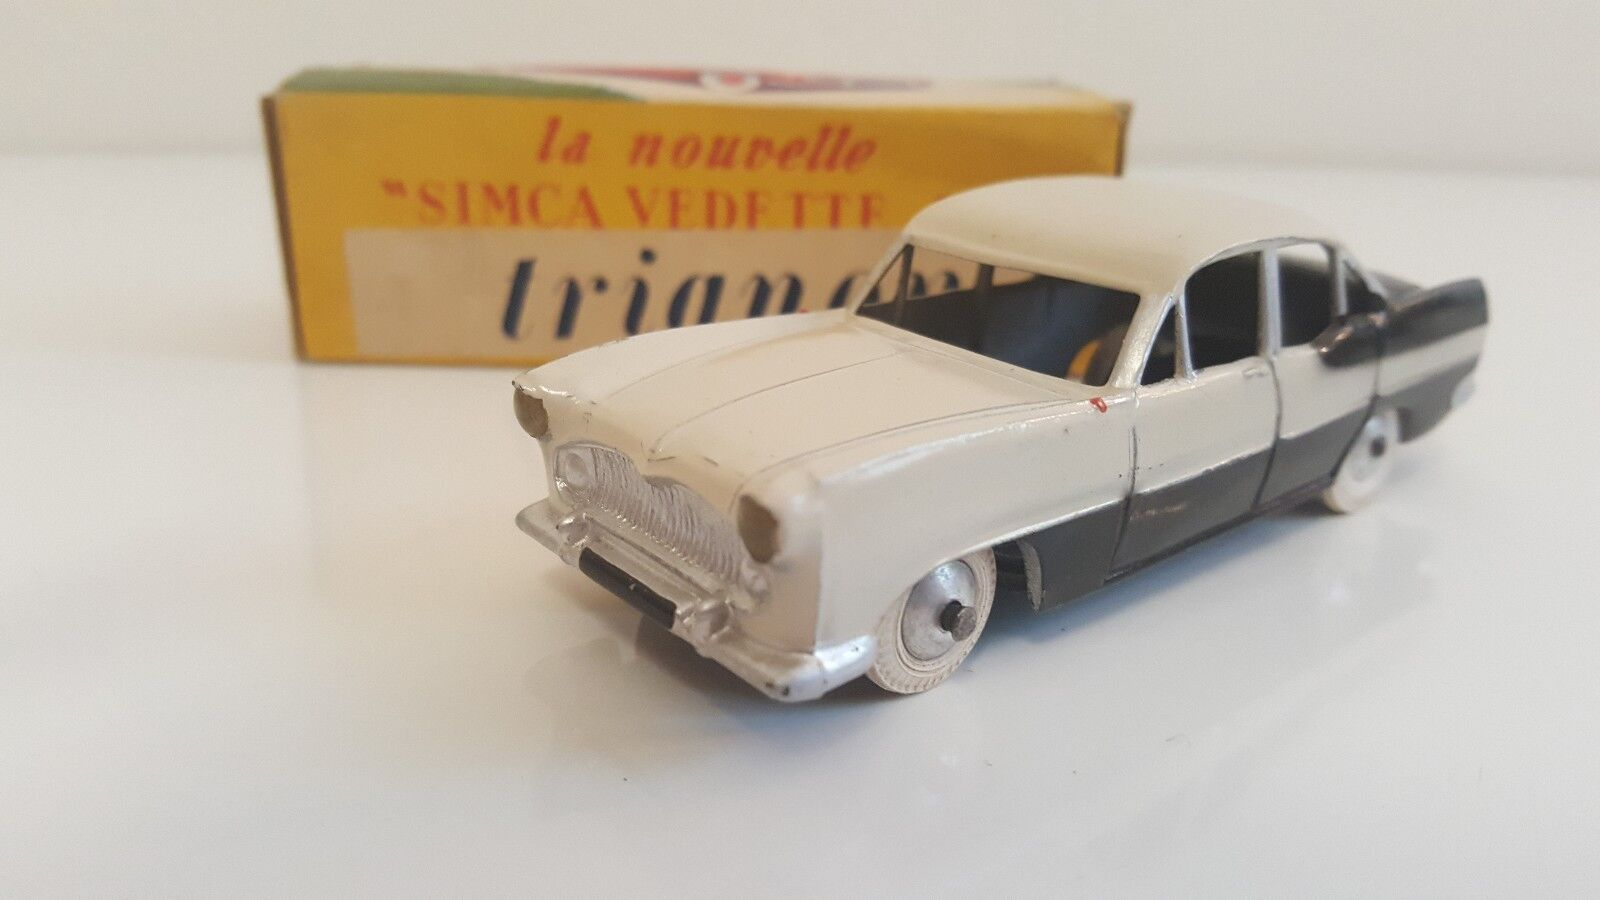 Quiralu-simca vedette 55 trianon in original box (prod. jan apr 56) vn mib